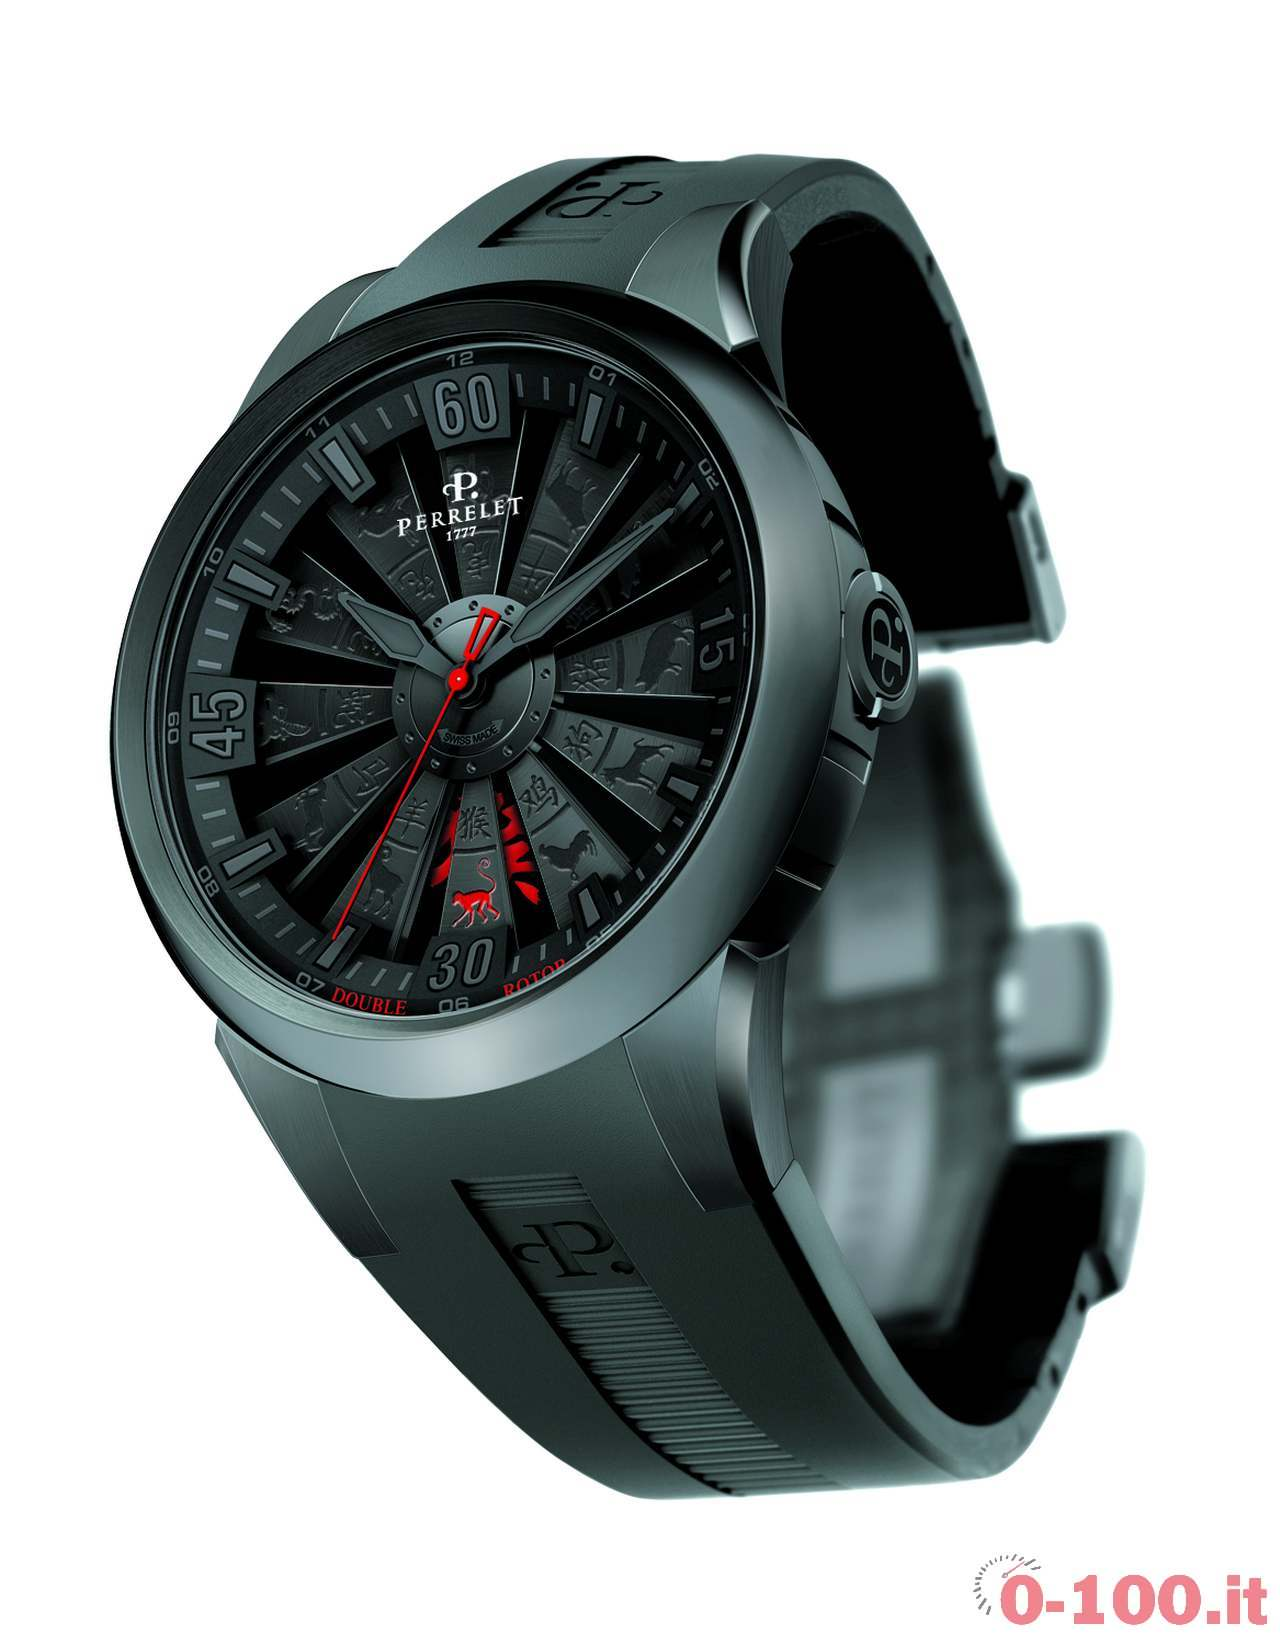 perrelet-turbine-monkey-limited-edition-ref-a10971prezzo-price_0-1002